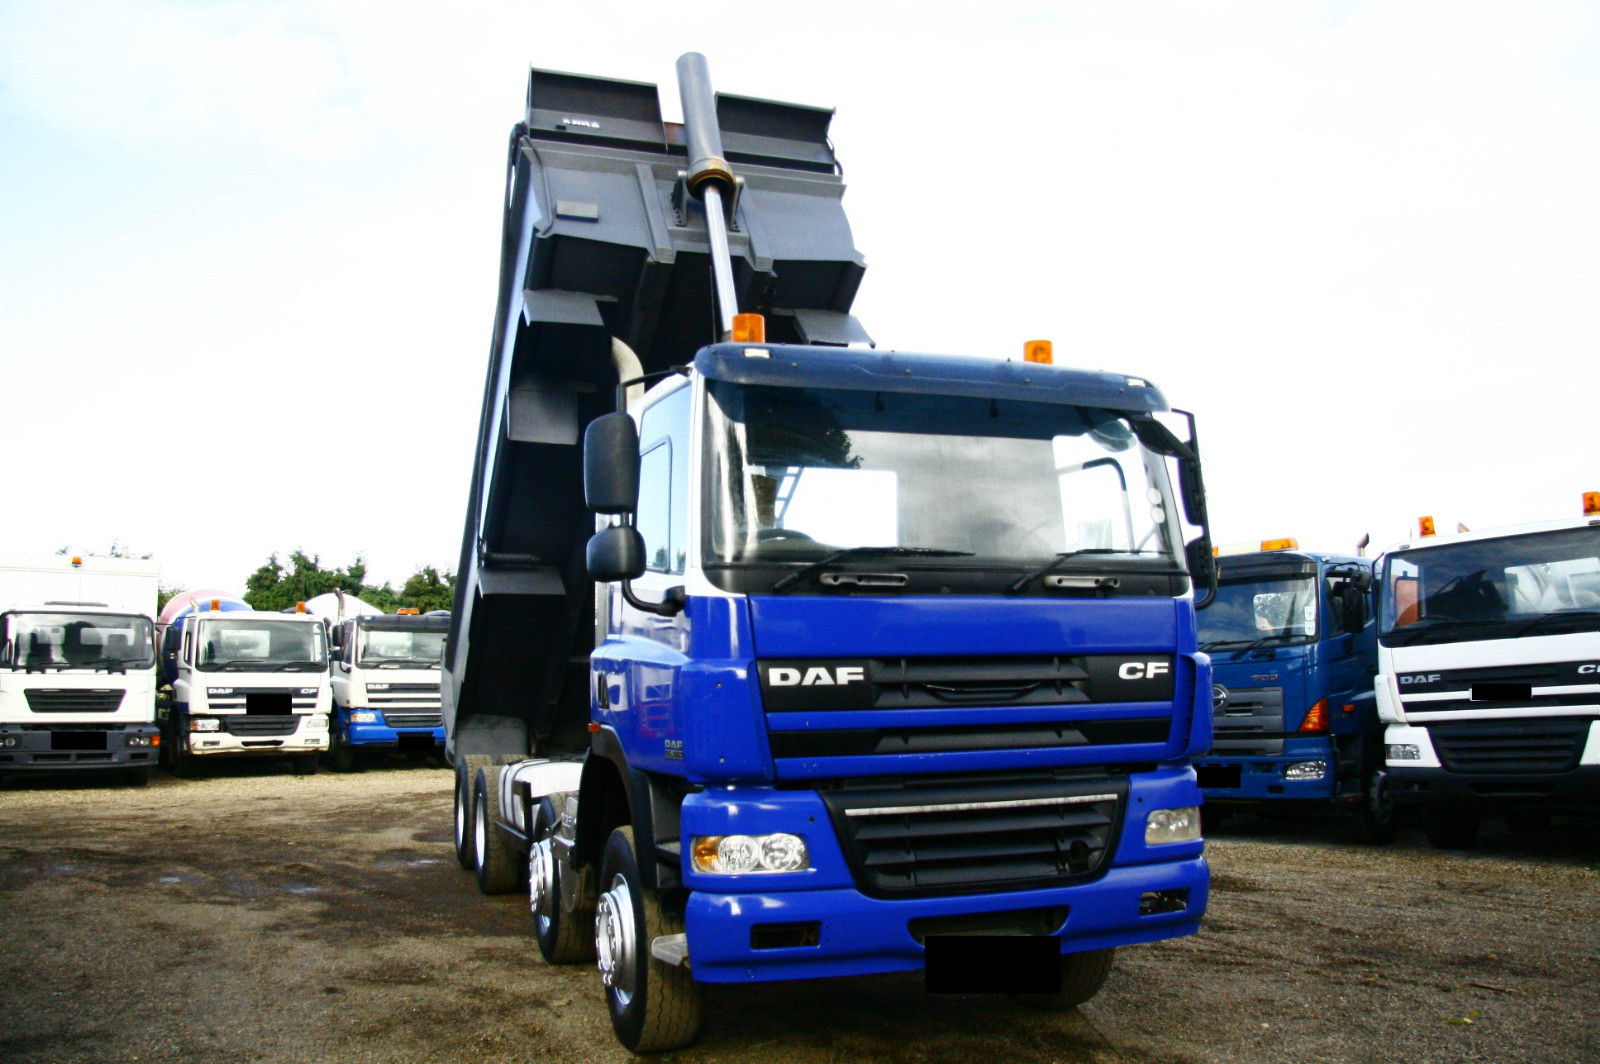 Used Tipper Trucks for Sale UK   Used, - Second Hand ...